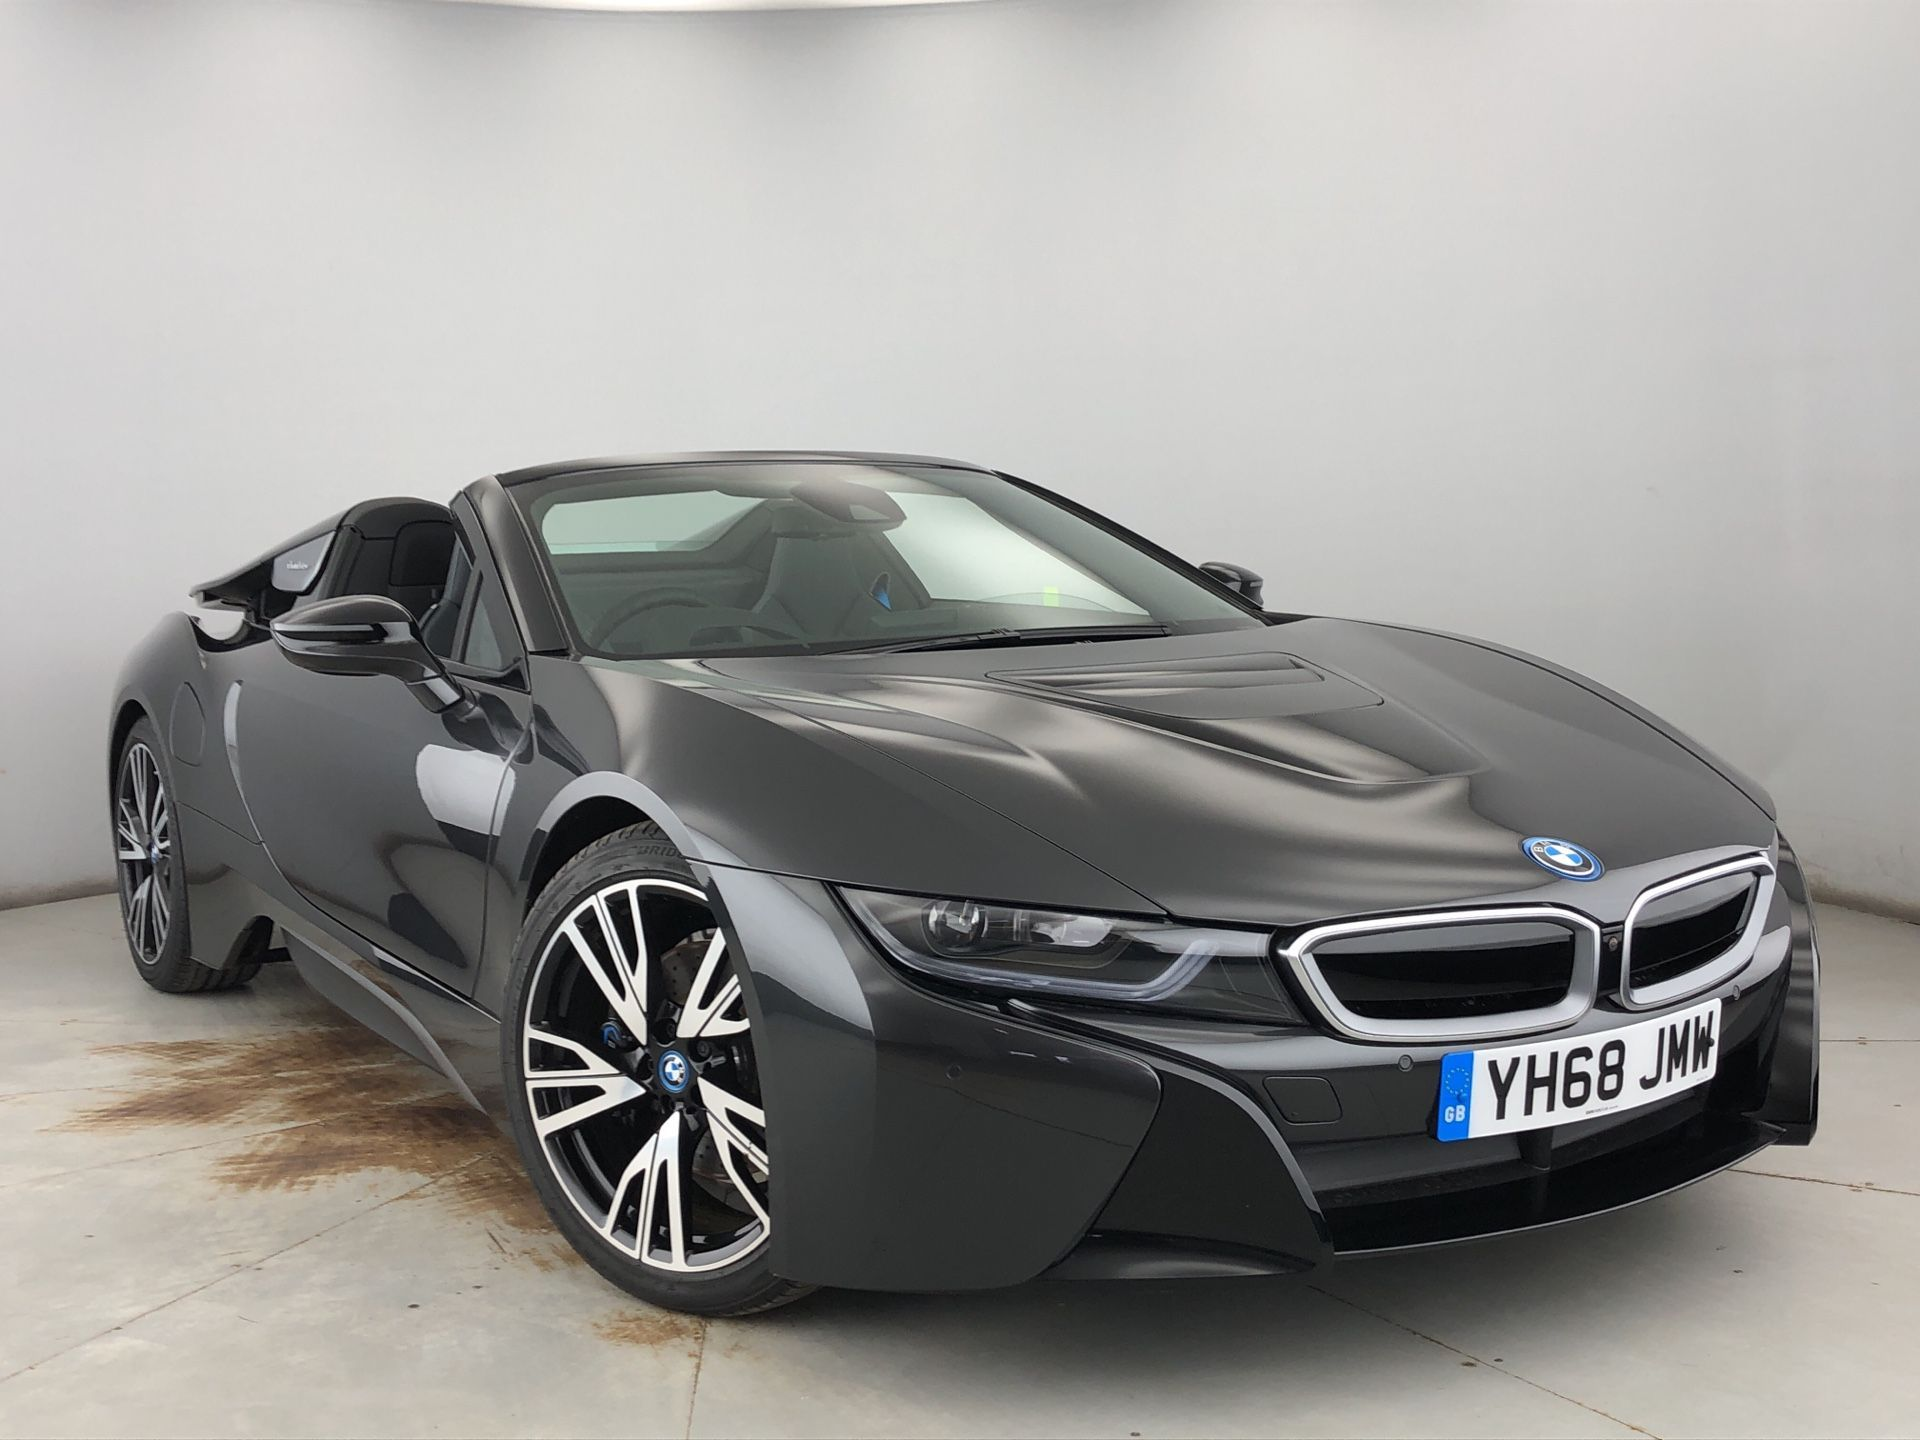 Image 4 - BMW 1.5 11.6kWh Roadster Auto 4WD (s/s) 2dr (YH68JMW)